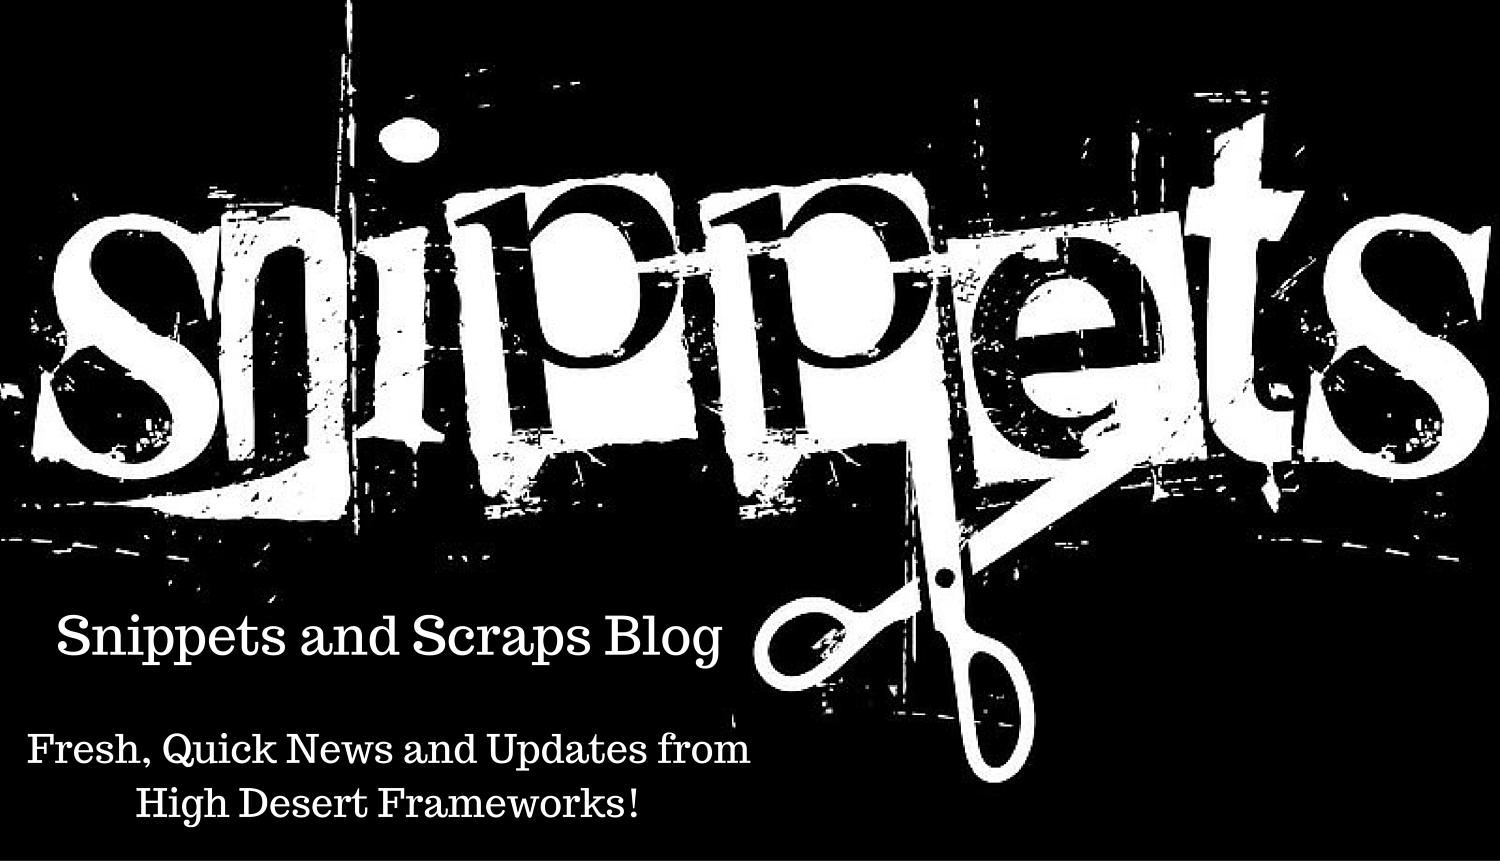 Click to view and subscribe to the Snippets Blog!